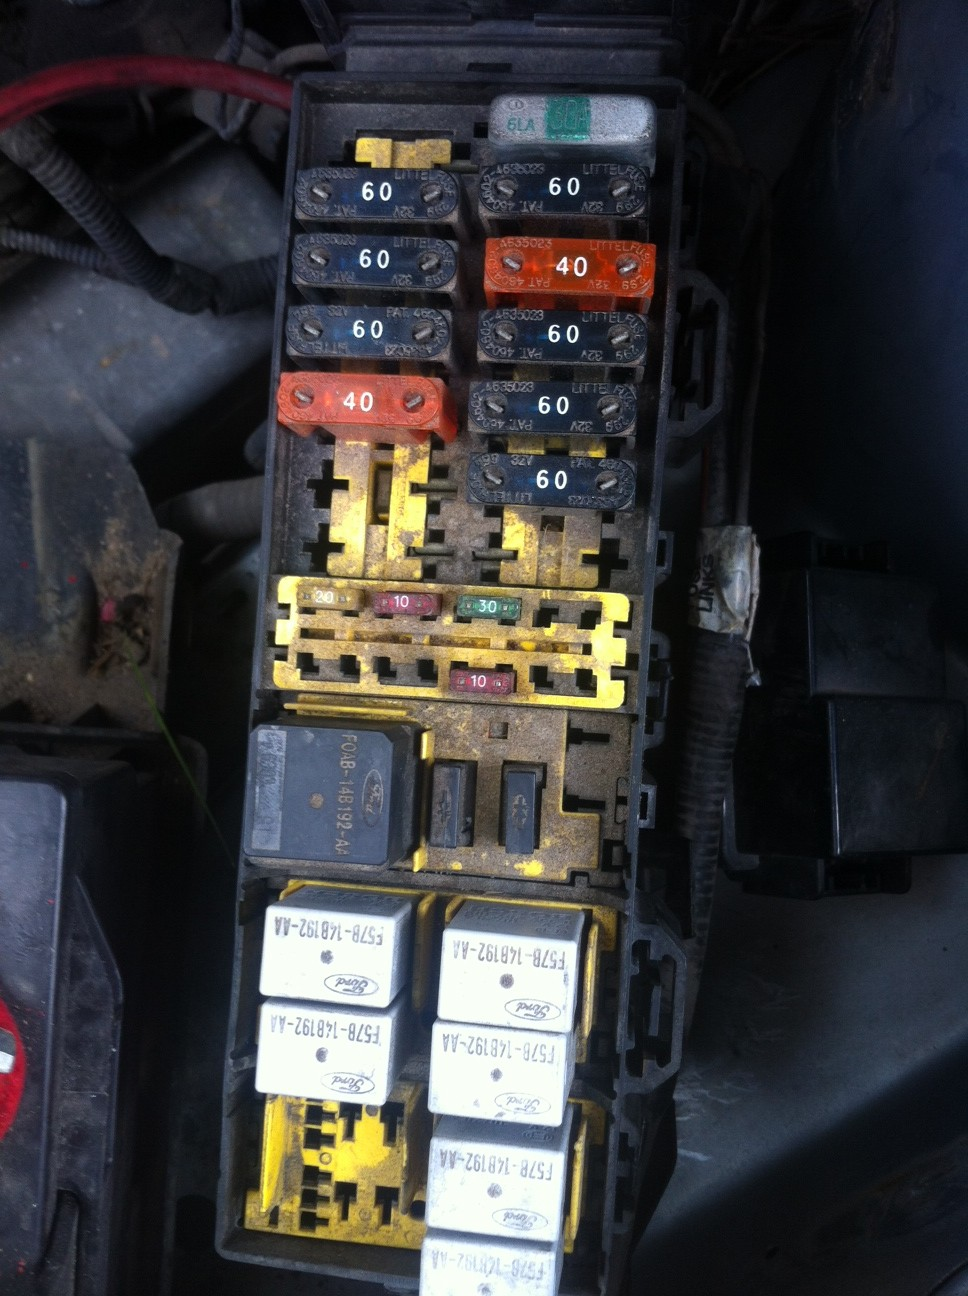 1998 Ford Windstar Engine Fuse Box House Wiring Diagram Symbols 1999 Radio 12vdc Problem The Van Acts Like There Is No Rh Justanswer Com Panel Ranger